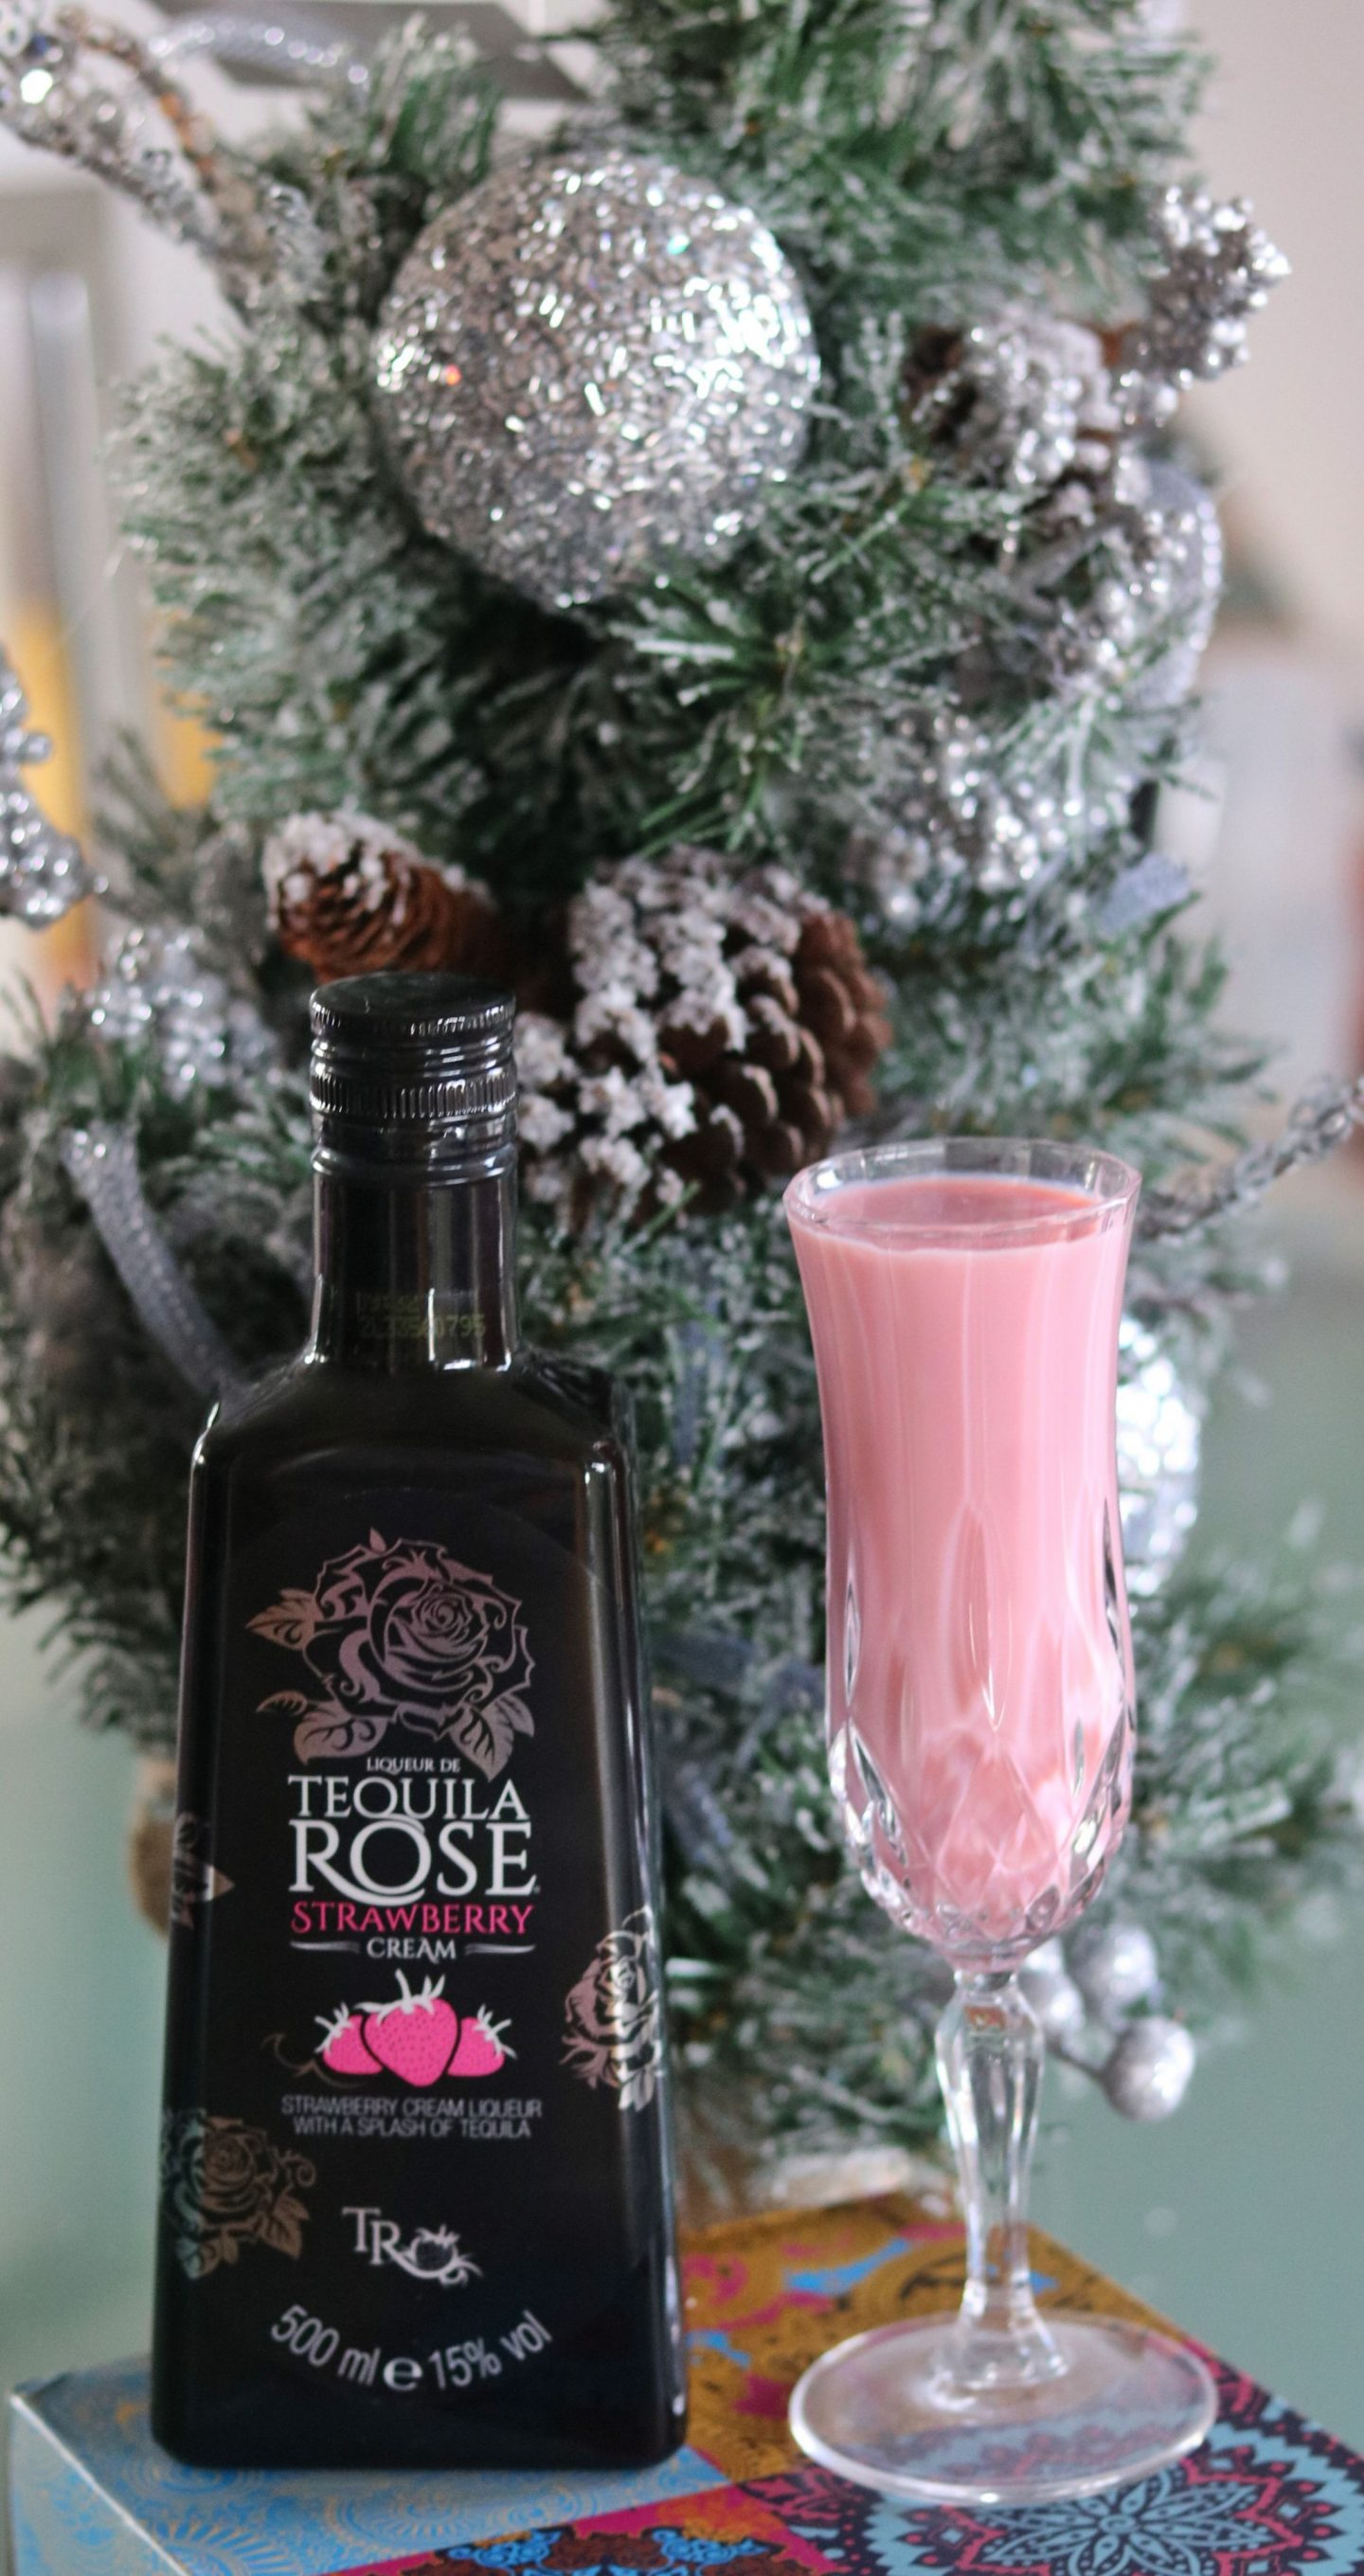 Different ways to serve Tequila Rose this festive season